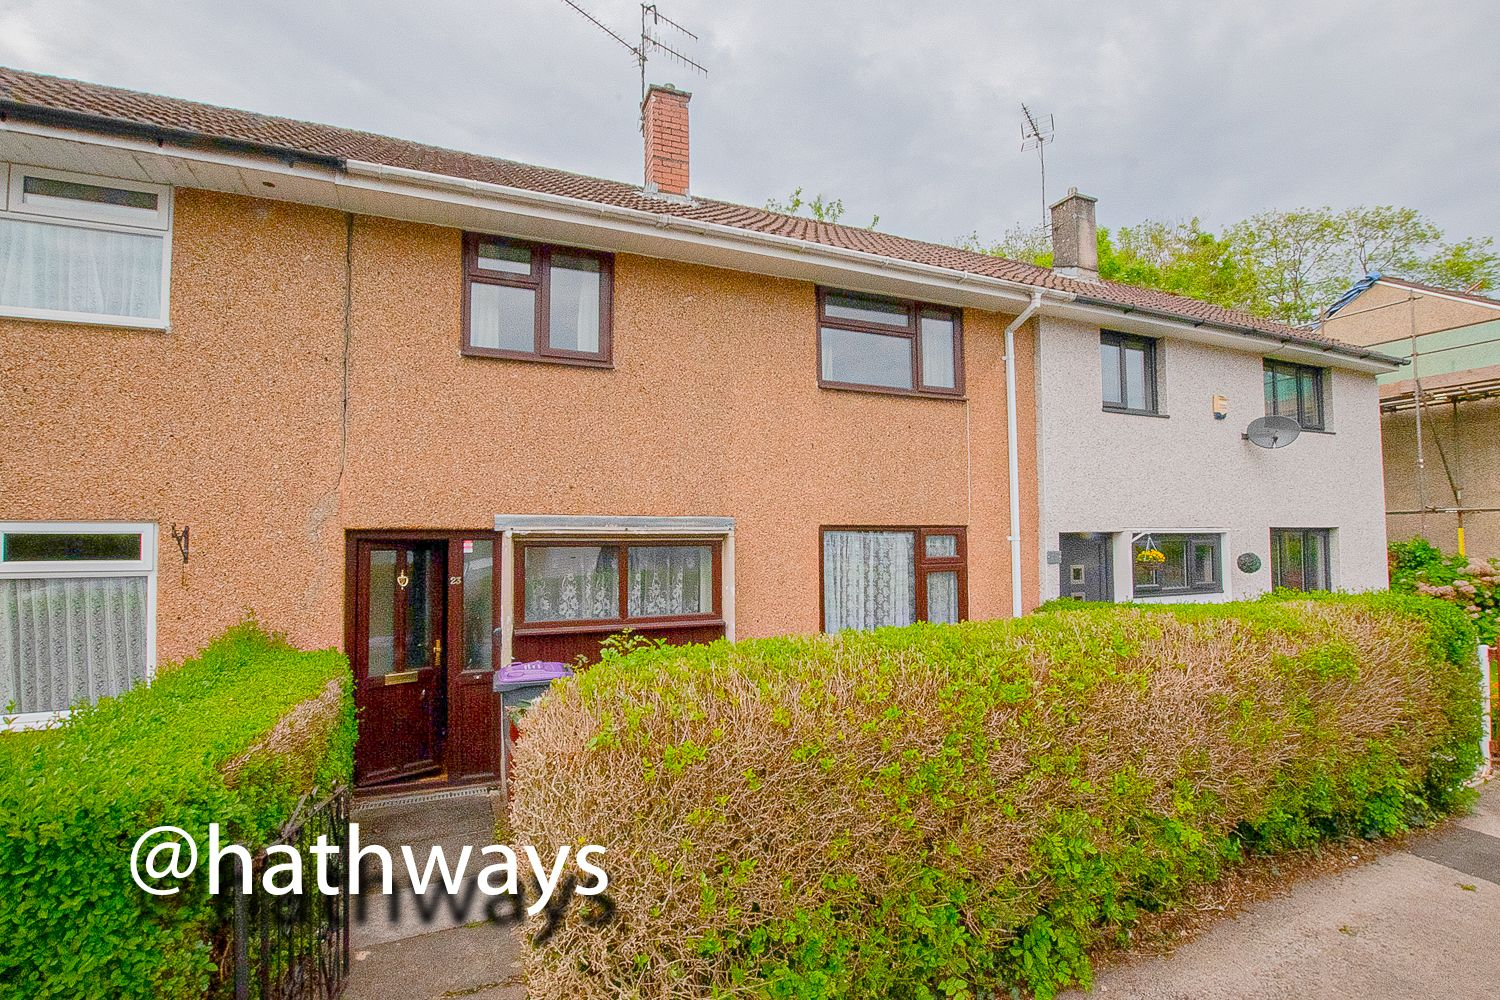 3 bed house for sale in Pencoed Place, NP44